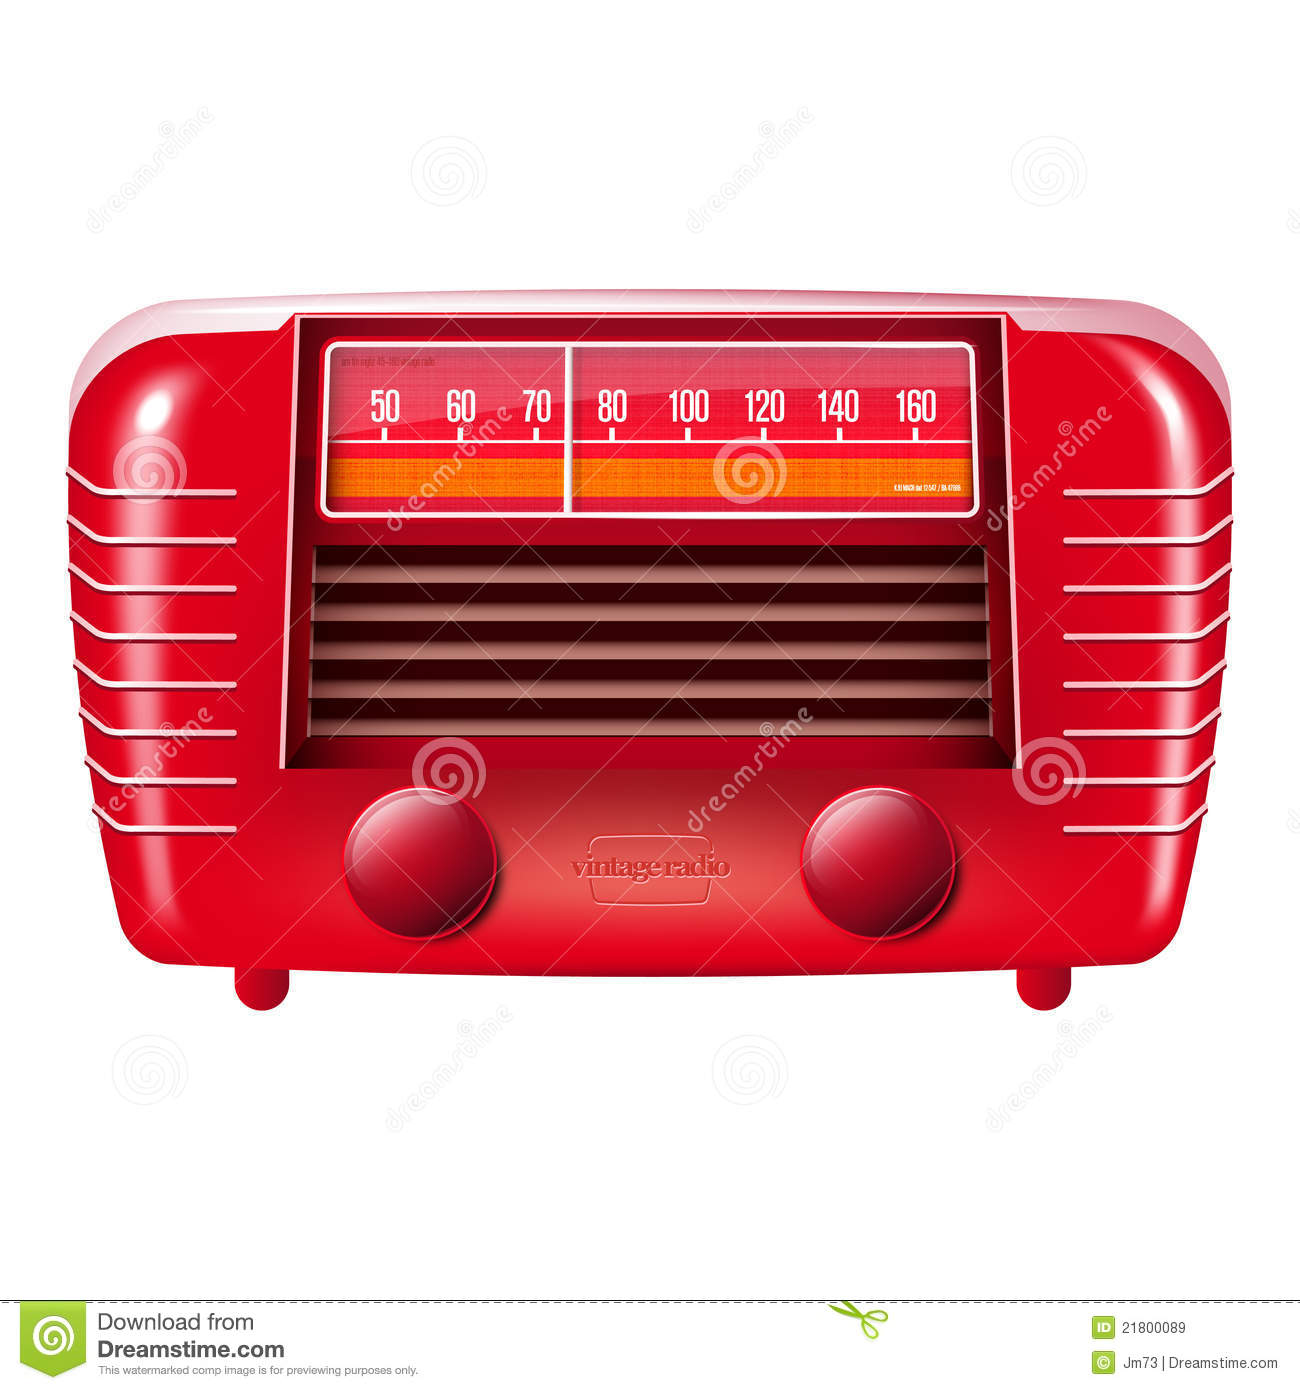 red vintage radio isolated on white royalty free stock images image 21800089. Black Bedroom Furniture Sets. Home Design Ideas